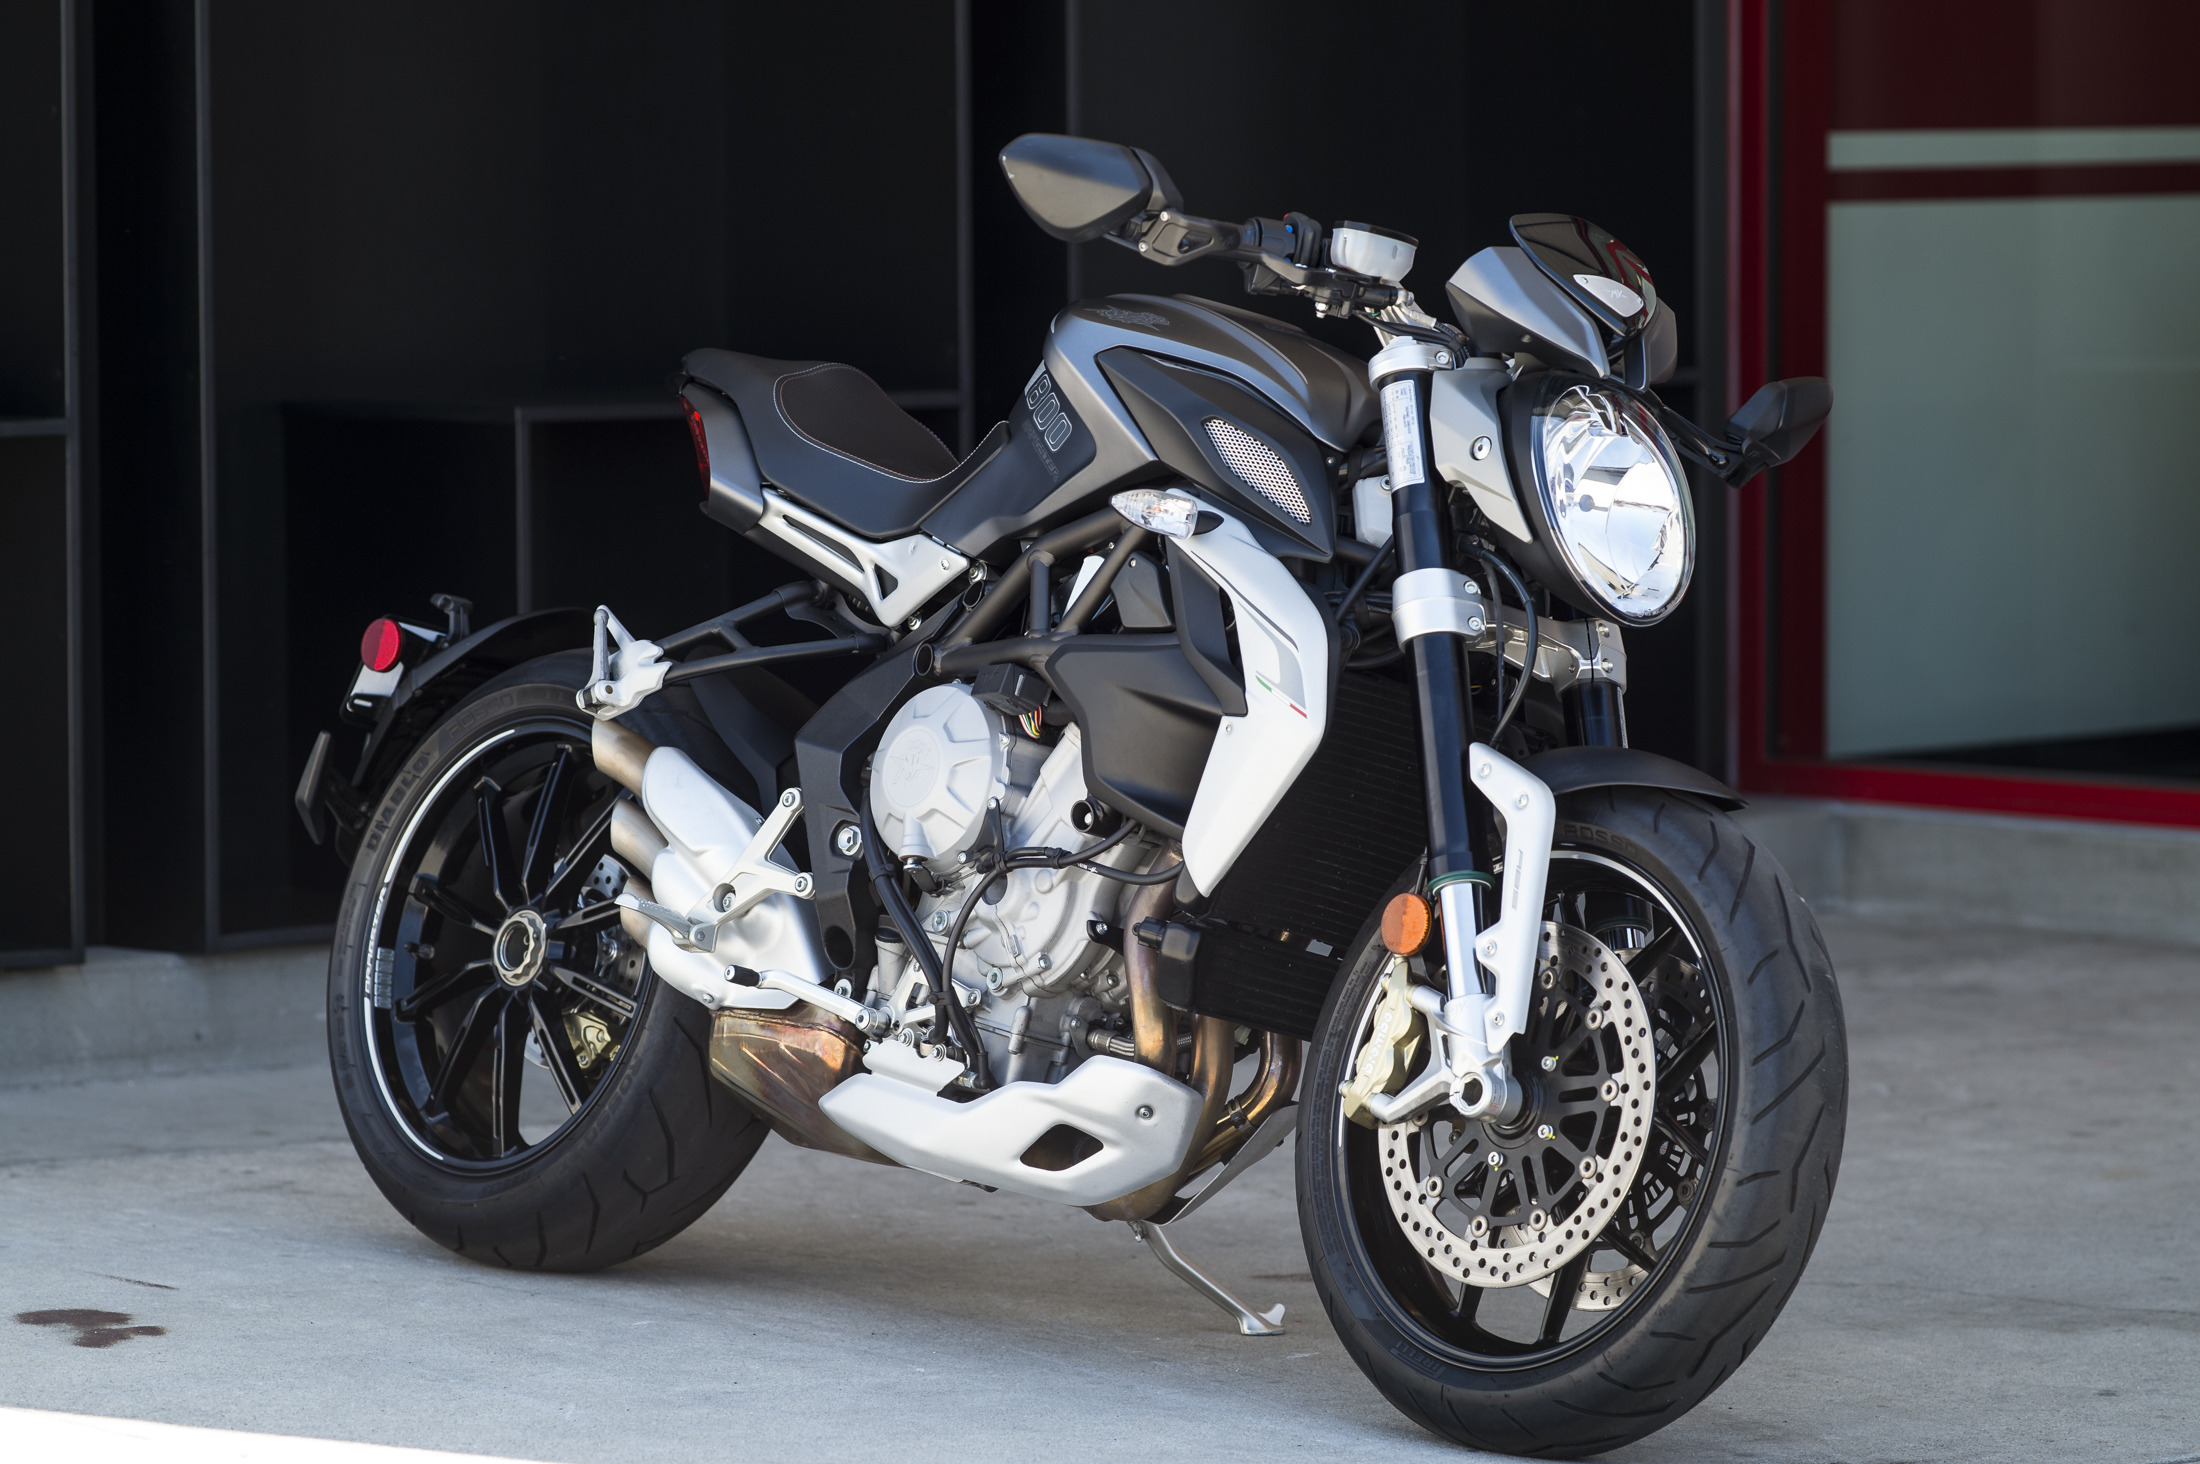 2014 Mv Agusta BRUTALE 800 DRAGSTER, motorcycle listing